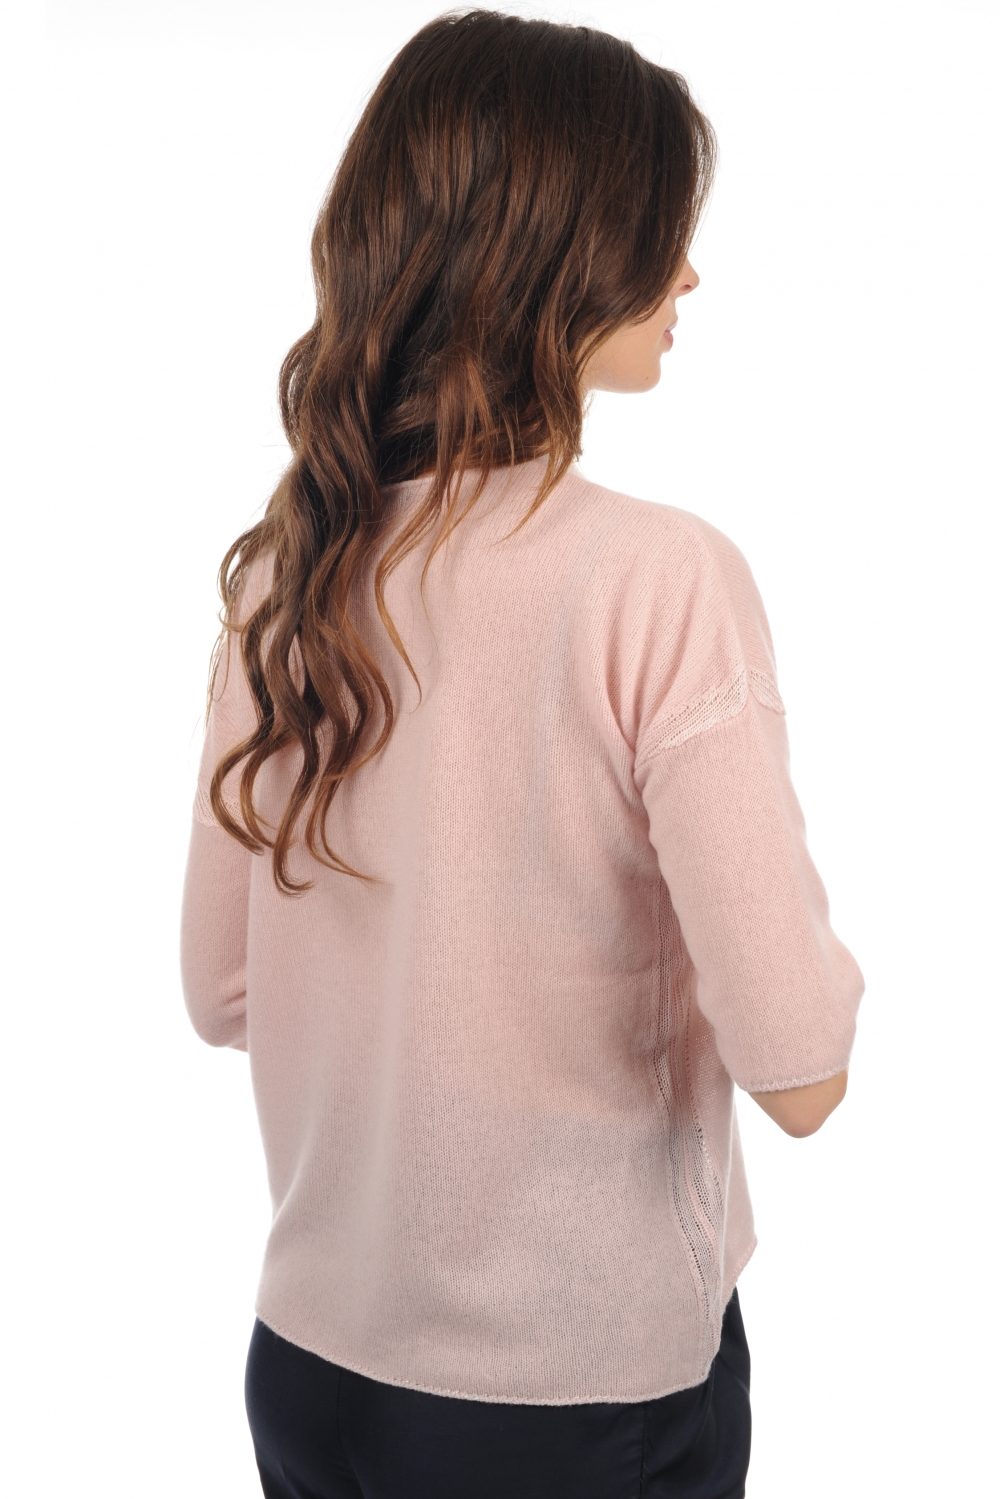 Cashmere & Silk ladies round necks denitsa shinking violet   blush s1